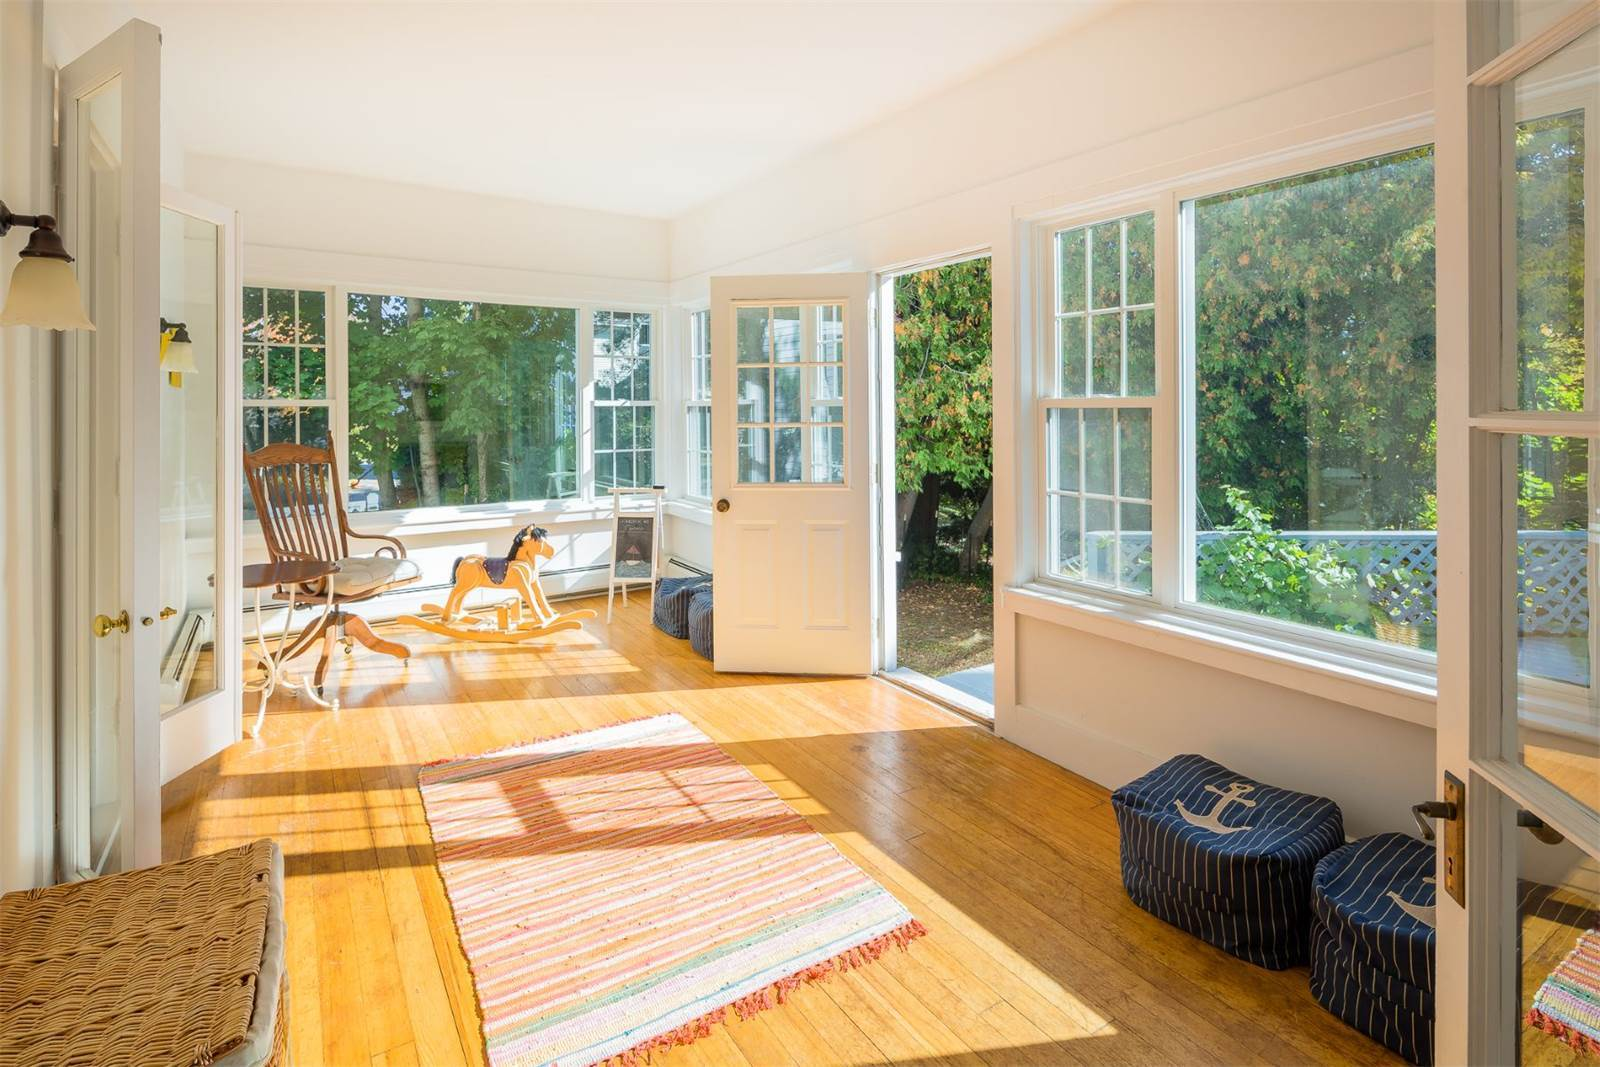 sun filled 1846 farmhouse wants 469k in maine curbed